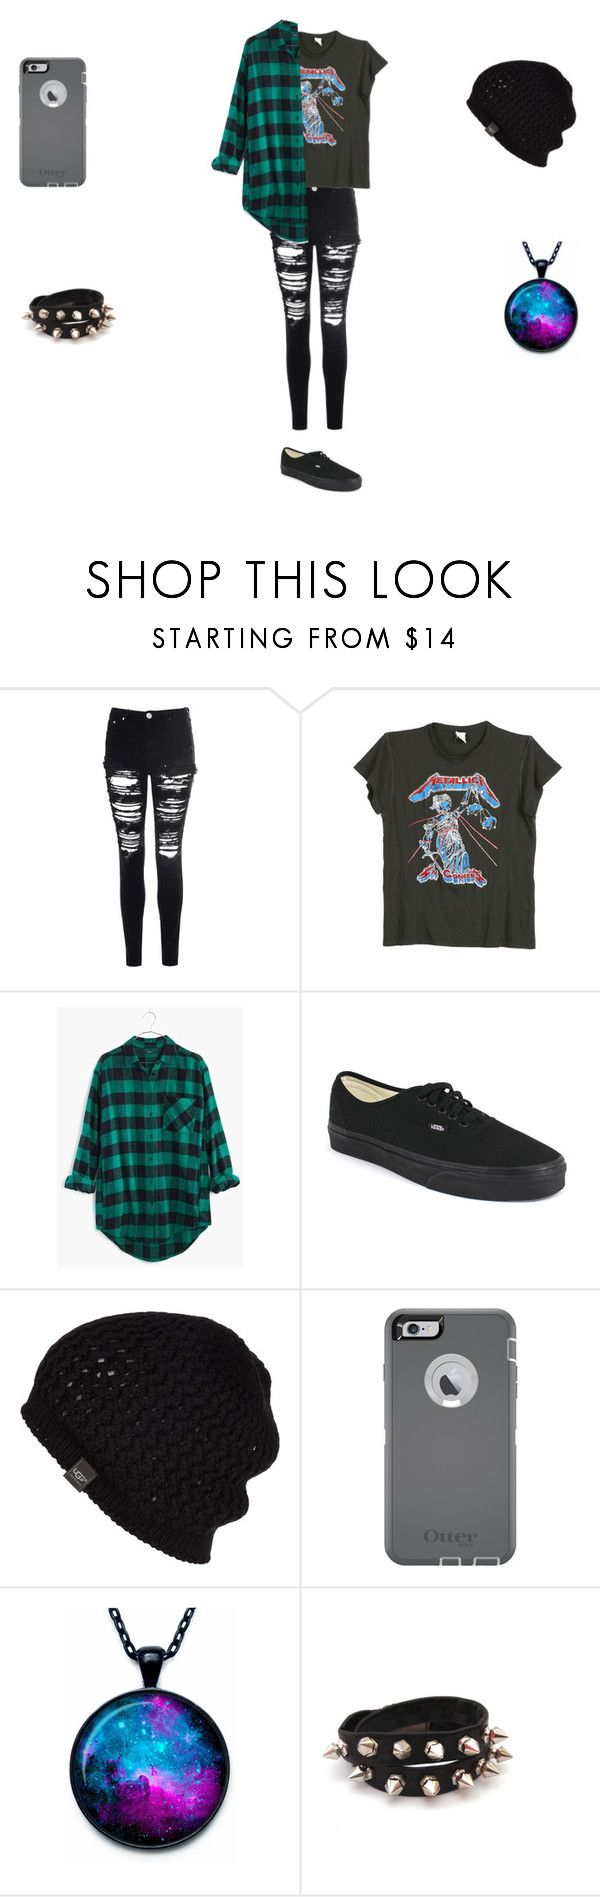 """Michael"" by roxas-lightwood ❤ liked on Polyvore featuring Glamorous, MadeWorn, Madewell, Vans, UGG Australia, OtterBox, women's clothing, women's fashion, women and female"